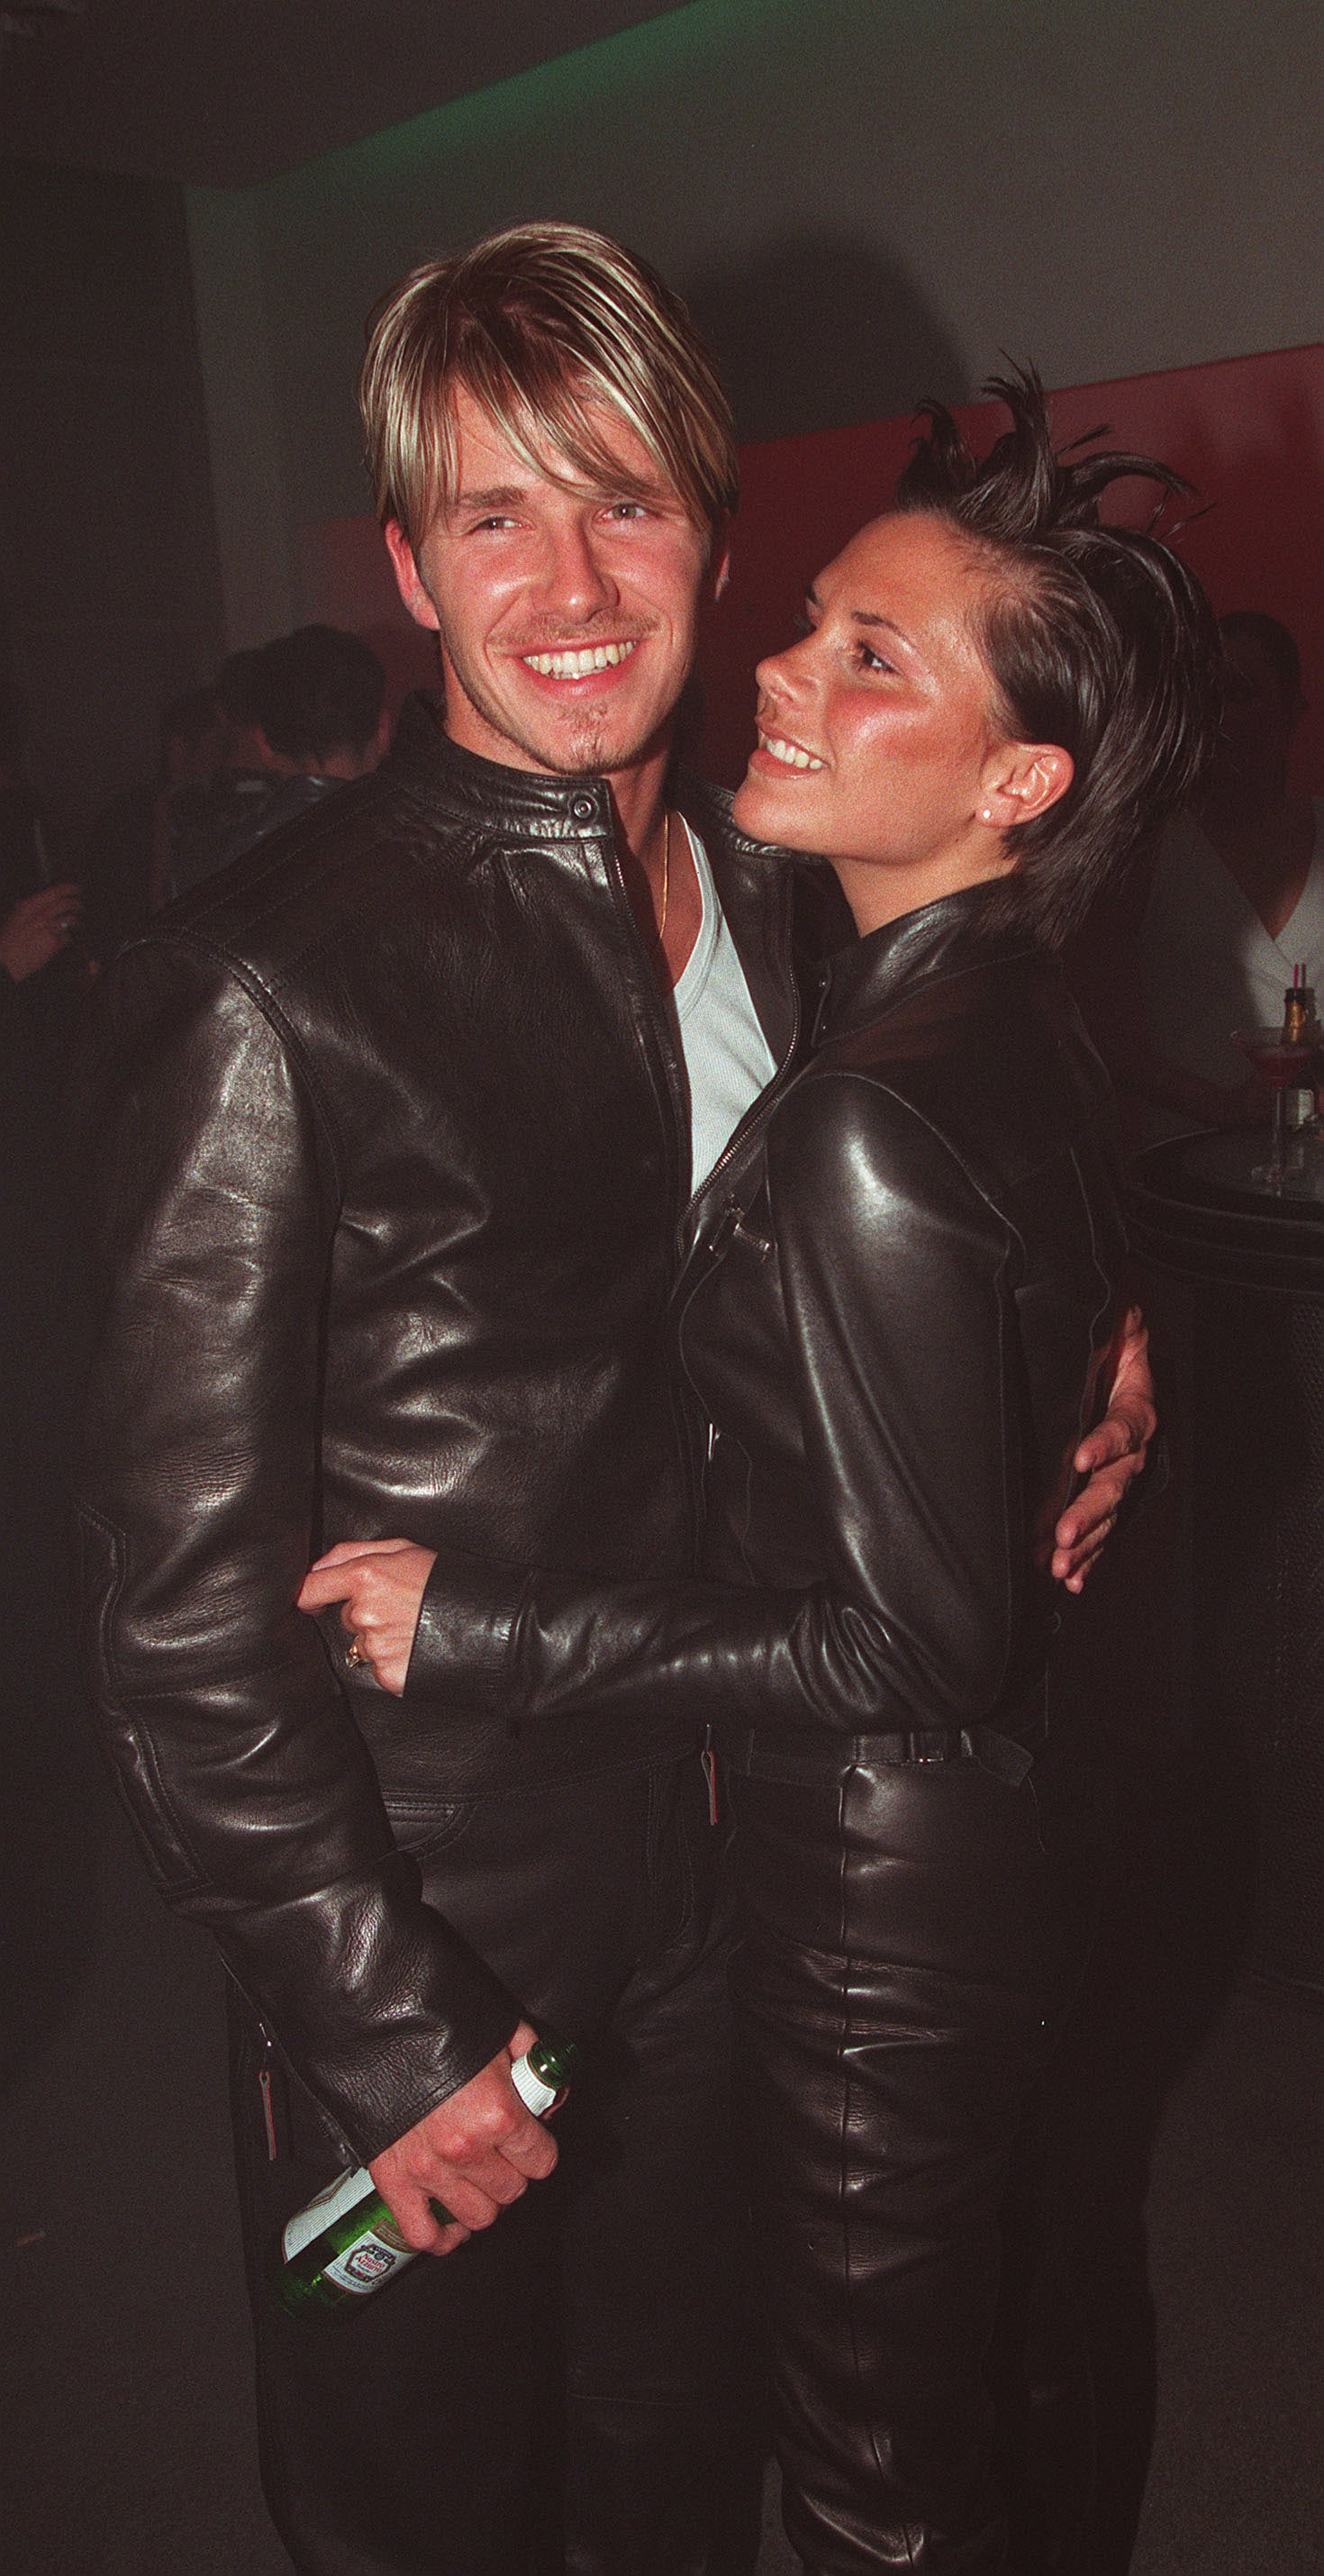 Victoria only had eyes for David during a June 1999 night out in London.